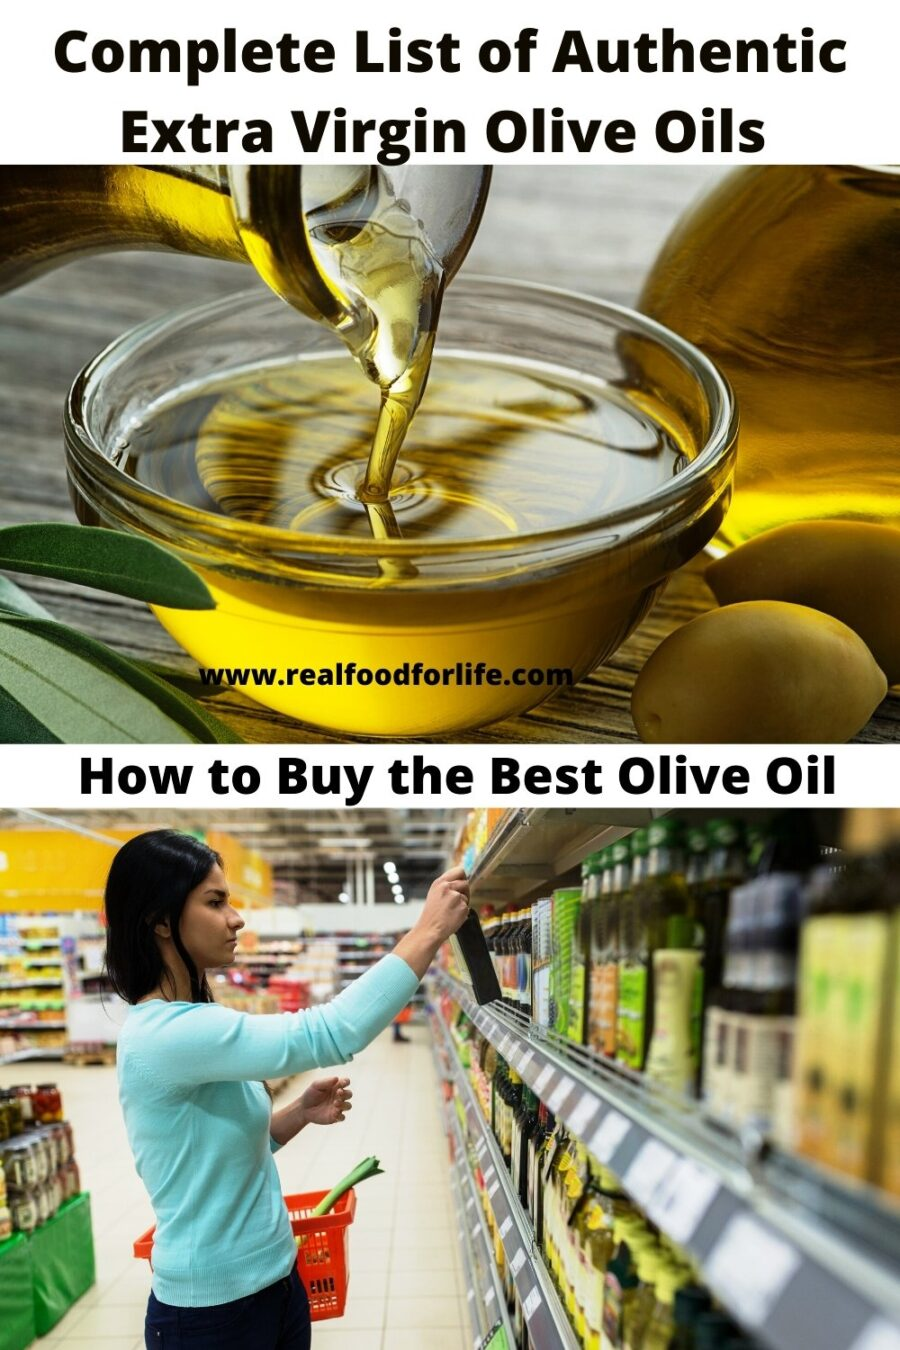 Authentic Virgin Olive Oils